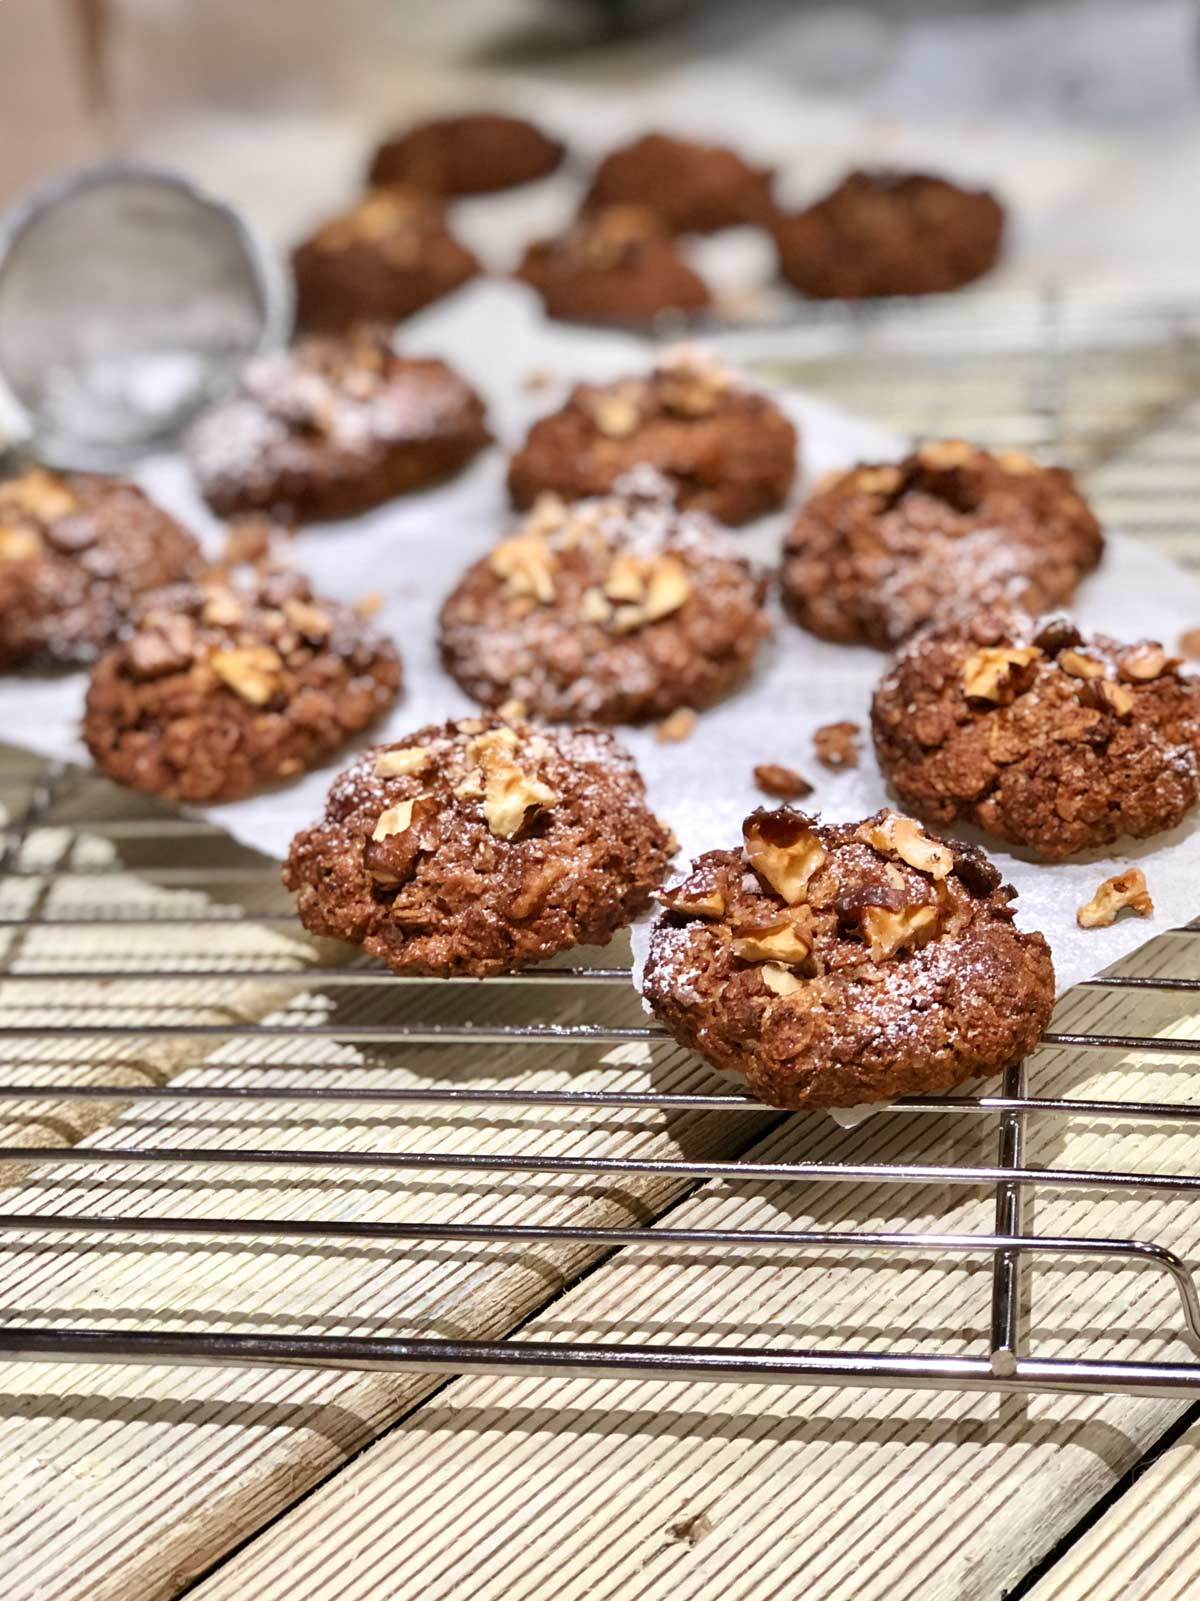 Pecan cookies with rye and barley flakes recipe